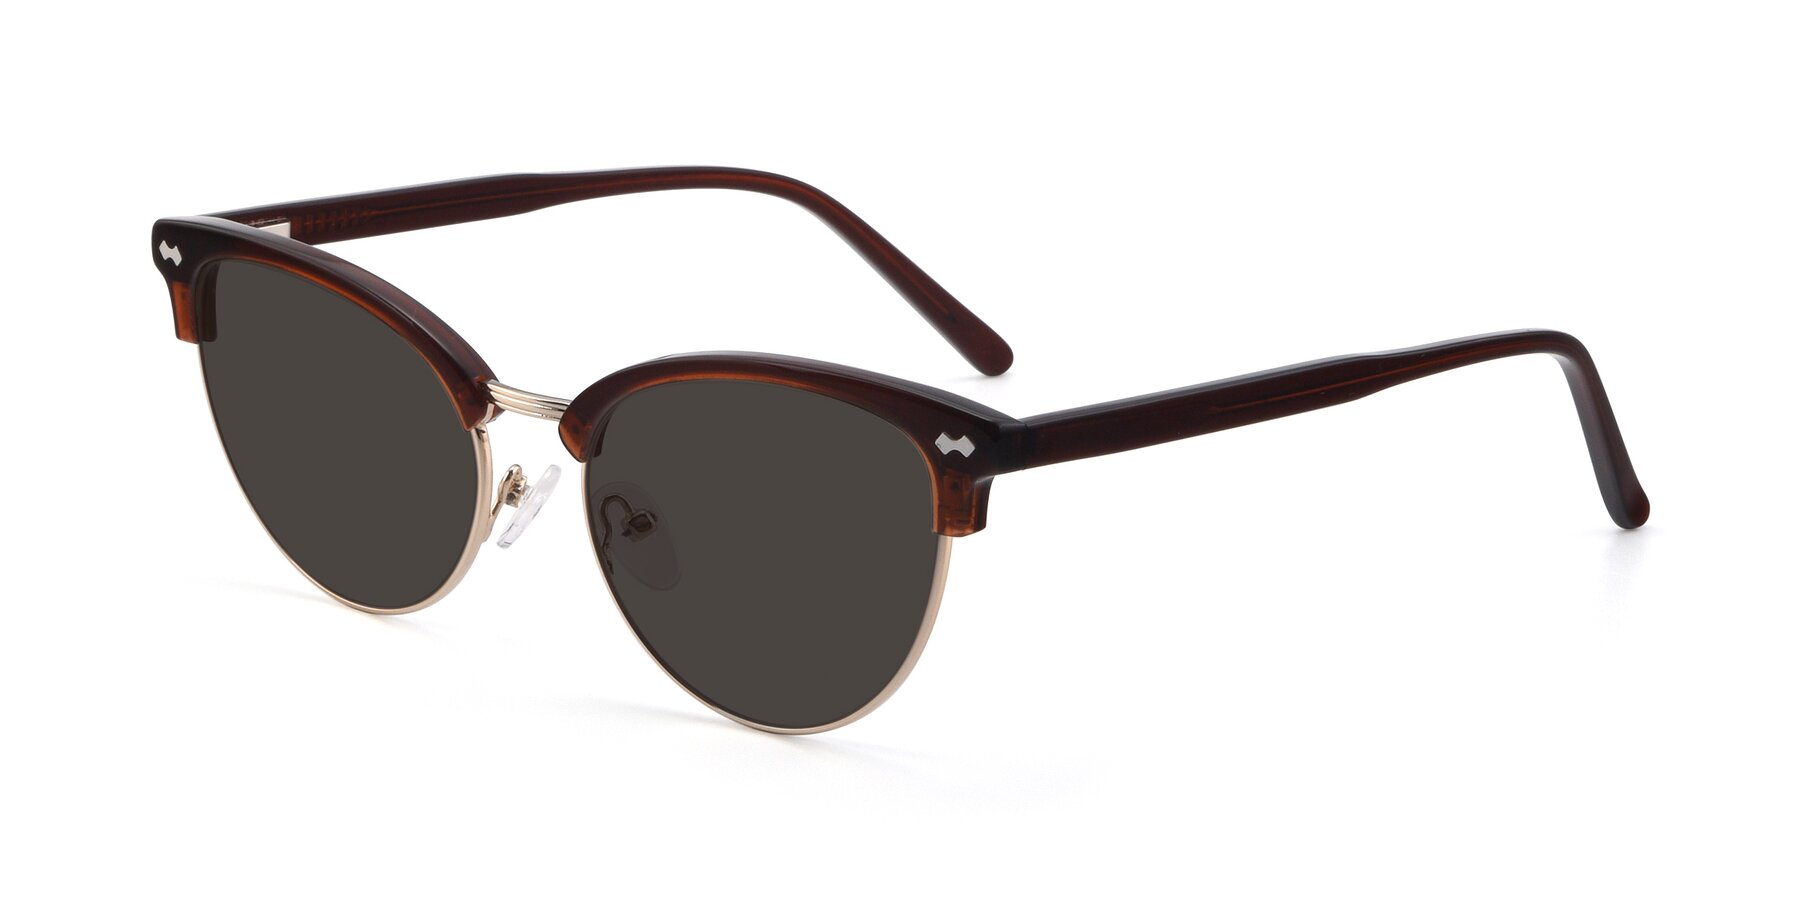 Angle of 17461 in Tortoise-Black with Gray Tinted Lenses